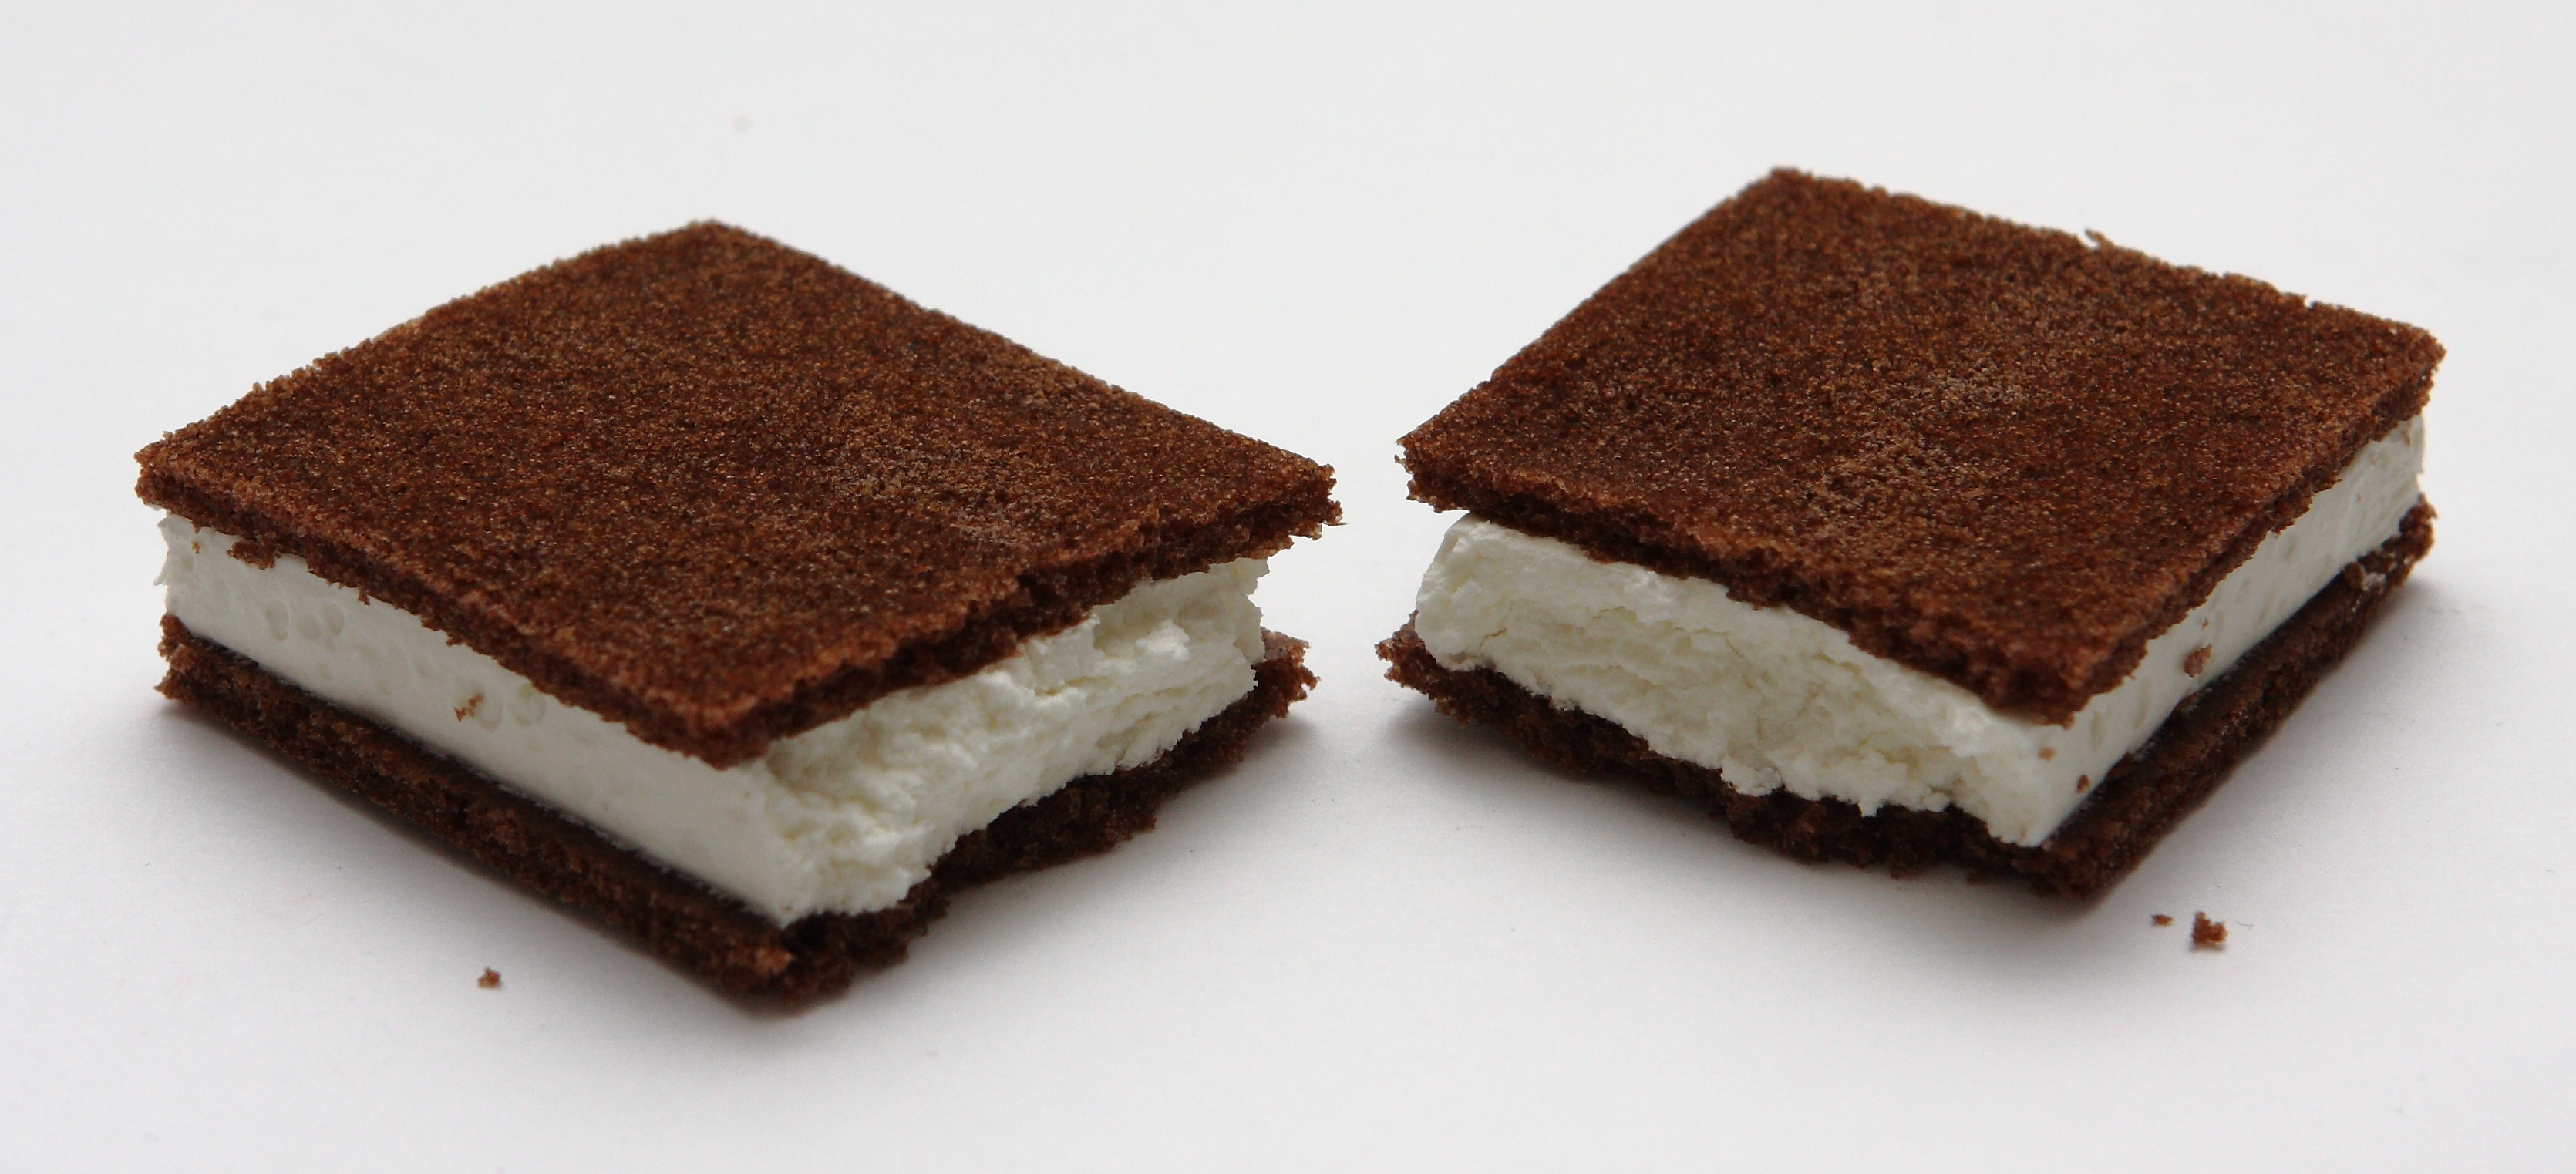 So I Ordered An Ice Cream Sandwich In Thailand This Is What They